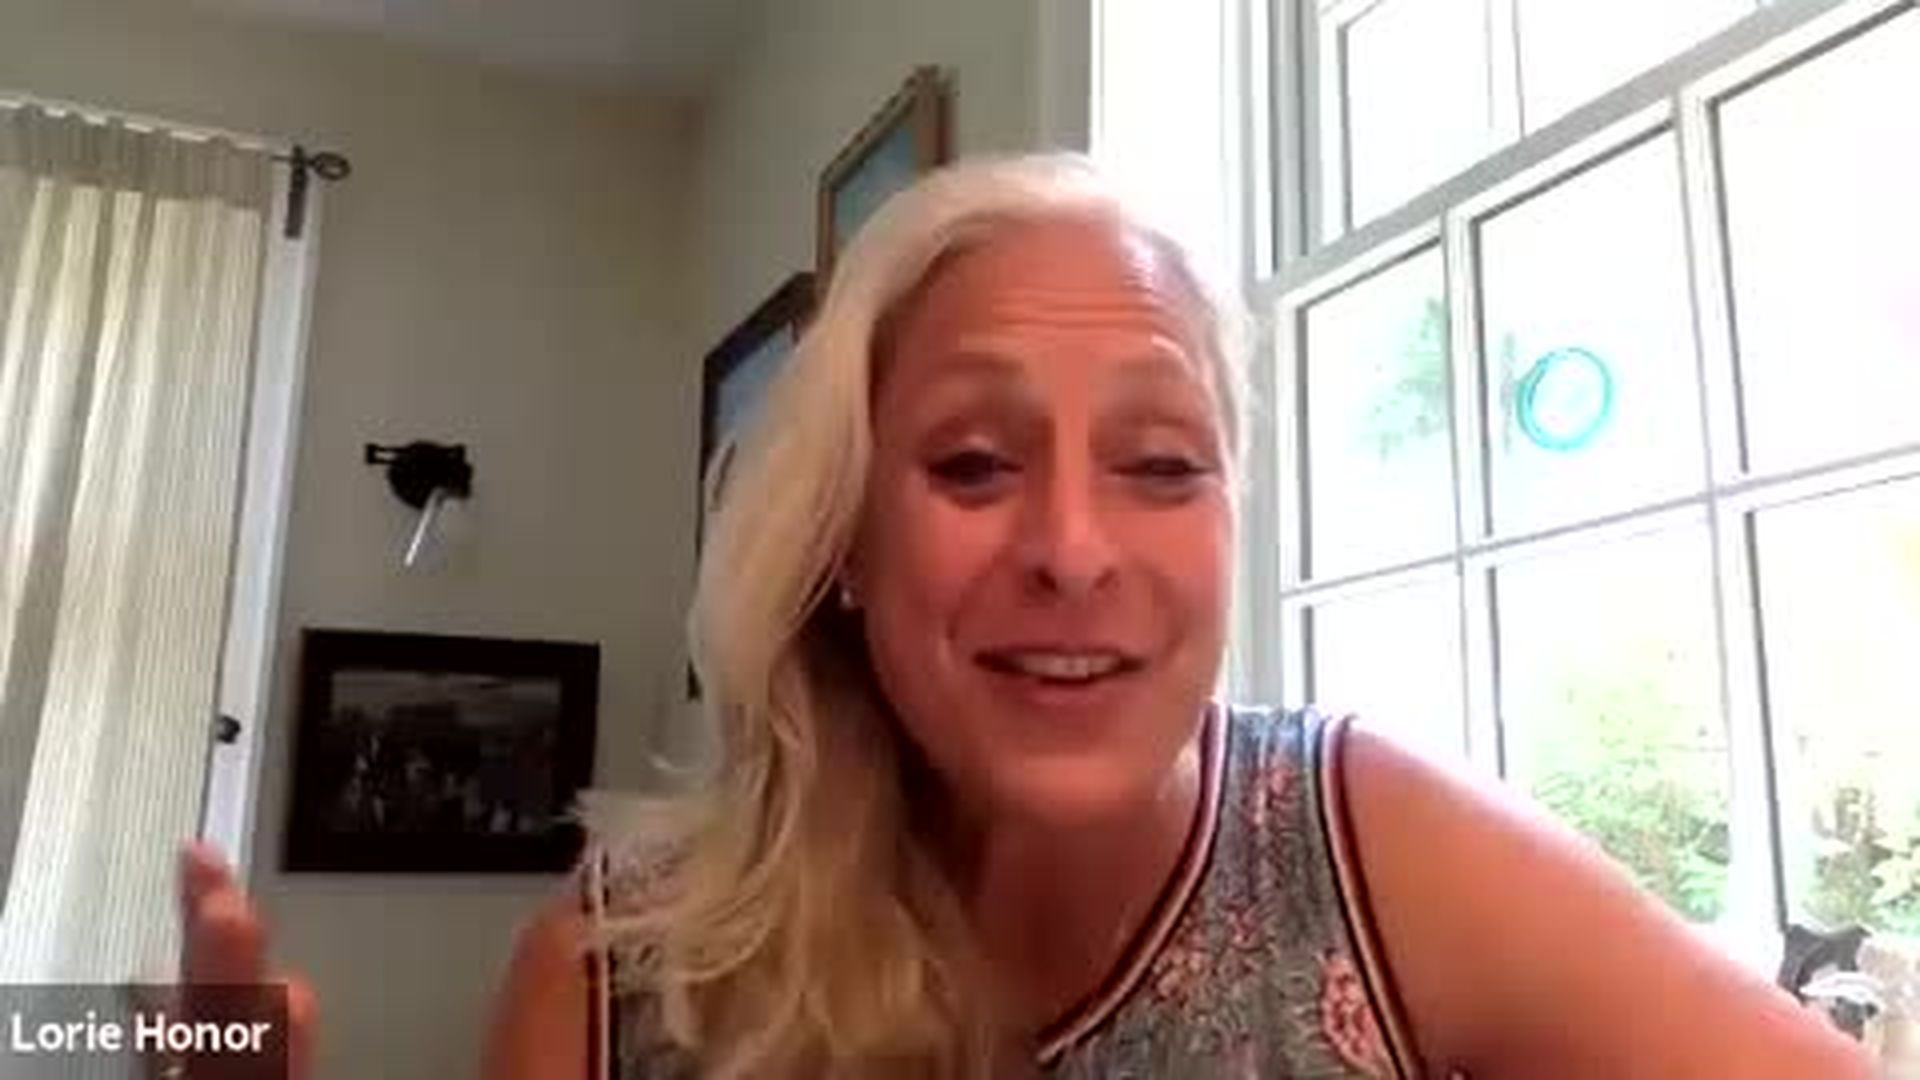 Lorie Honor | 2021 Democratic Candidate for Staten Island Borough President Candidate